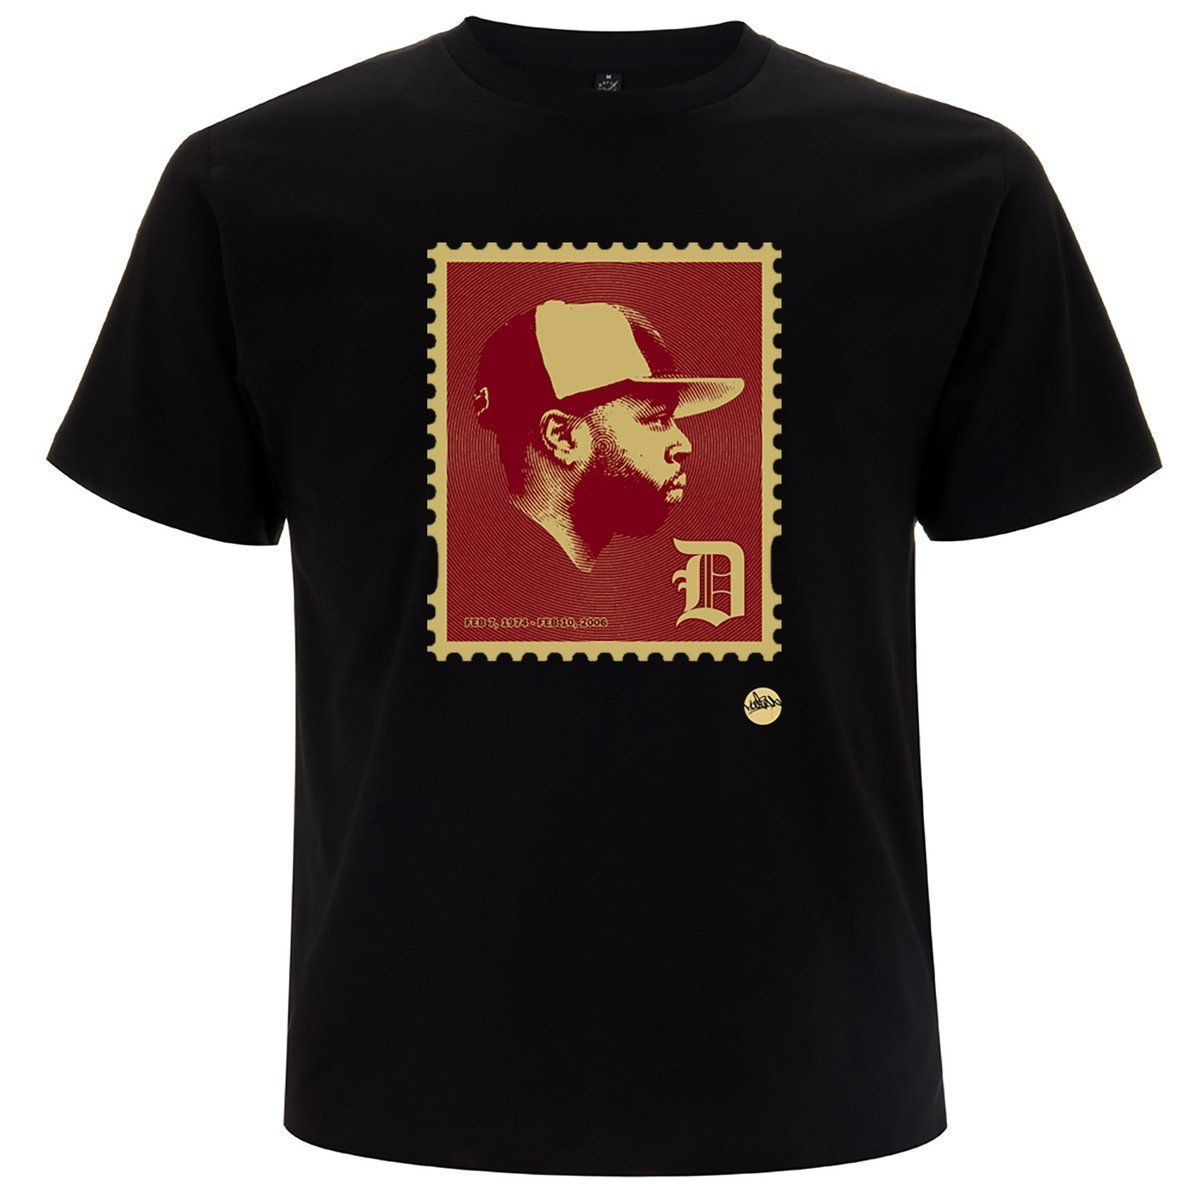 LOW STOCK! The JD' Stamp REMIX T-shirt by @madina_design available NOW >>  << Shipping now #hiphop #stamps #summer #detroit #jdilla #dilla #stamp #classic RT